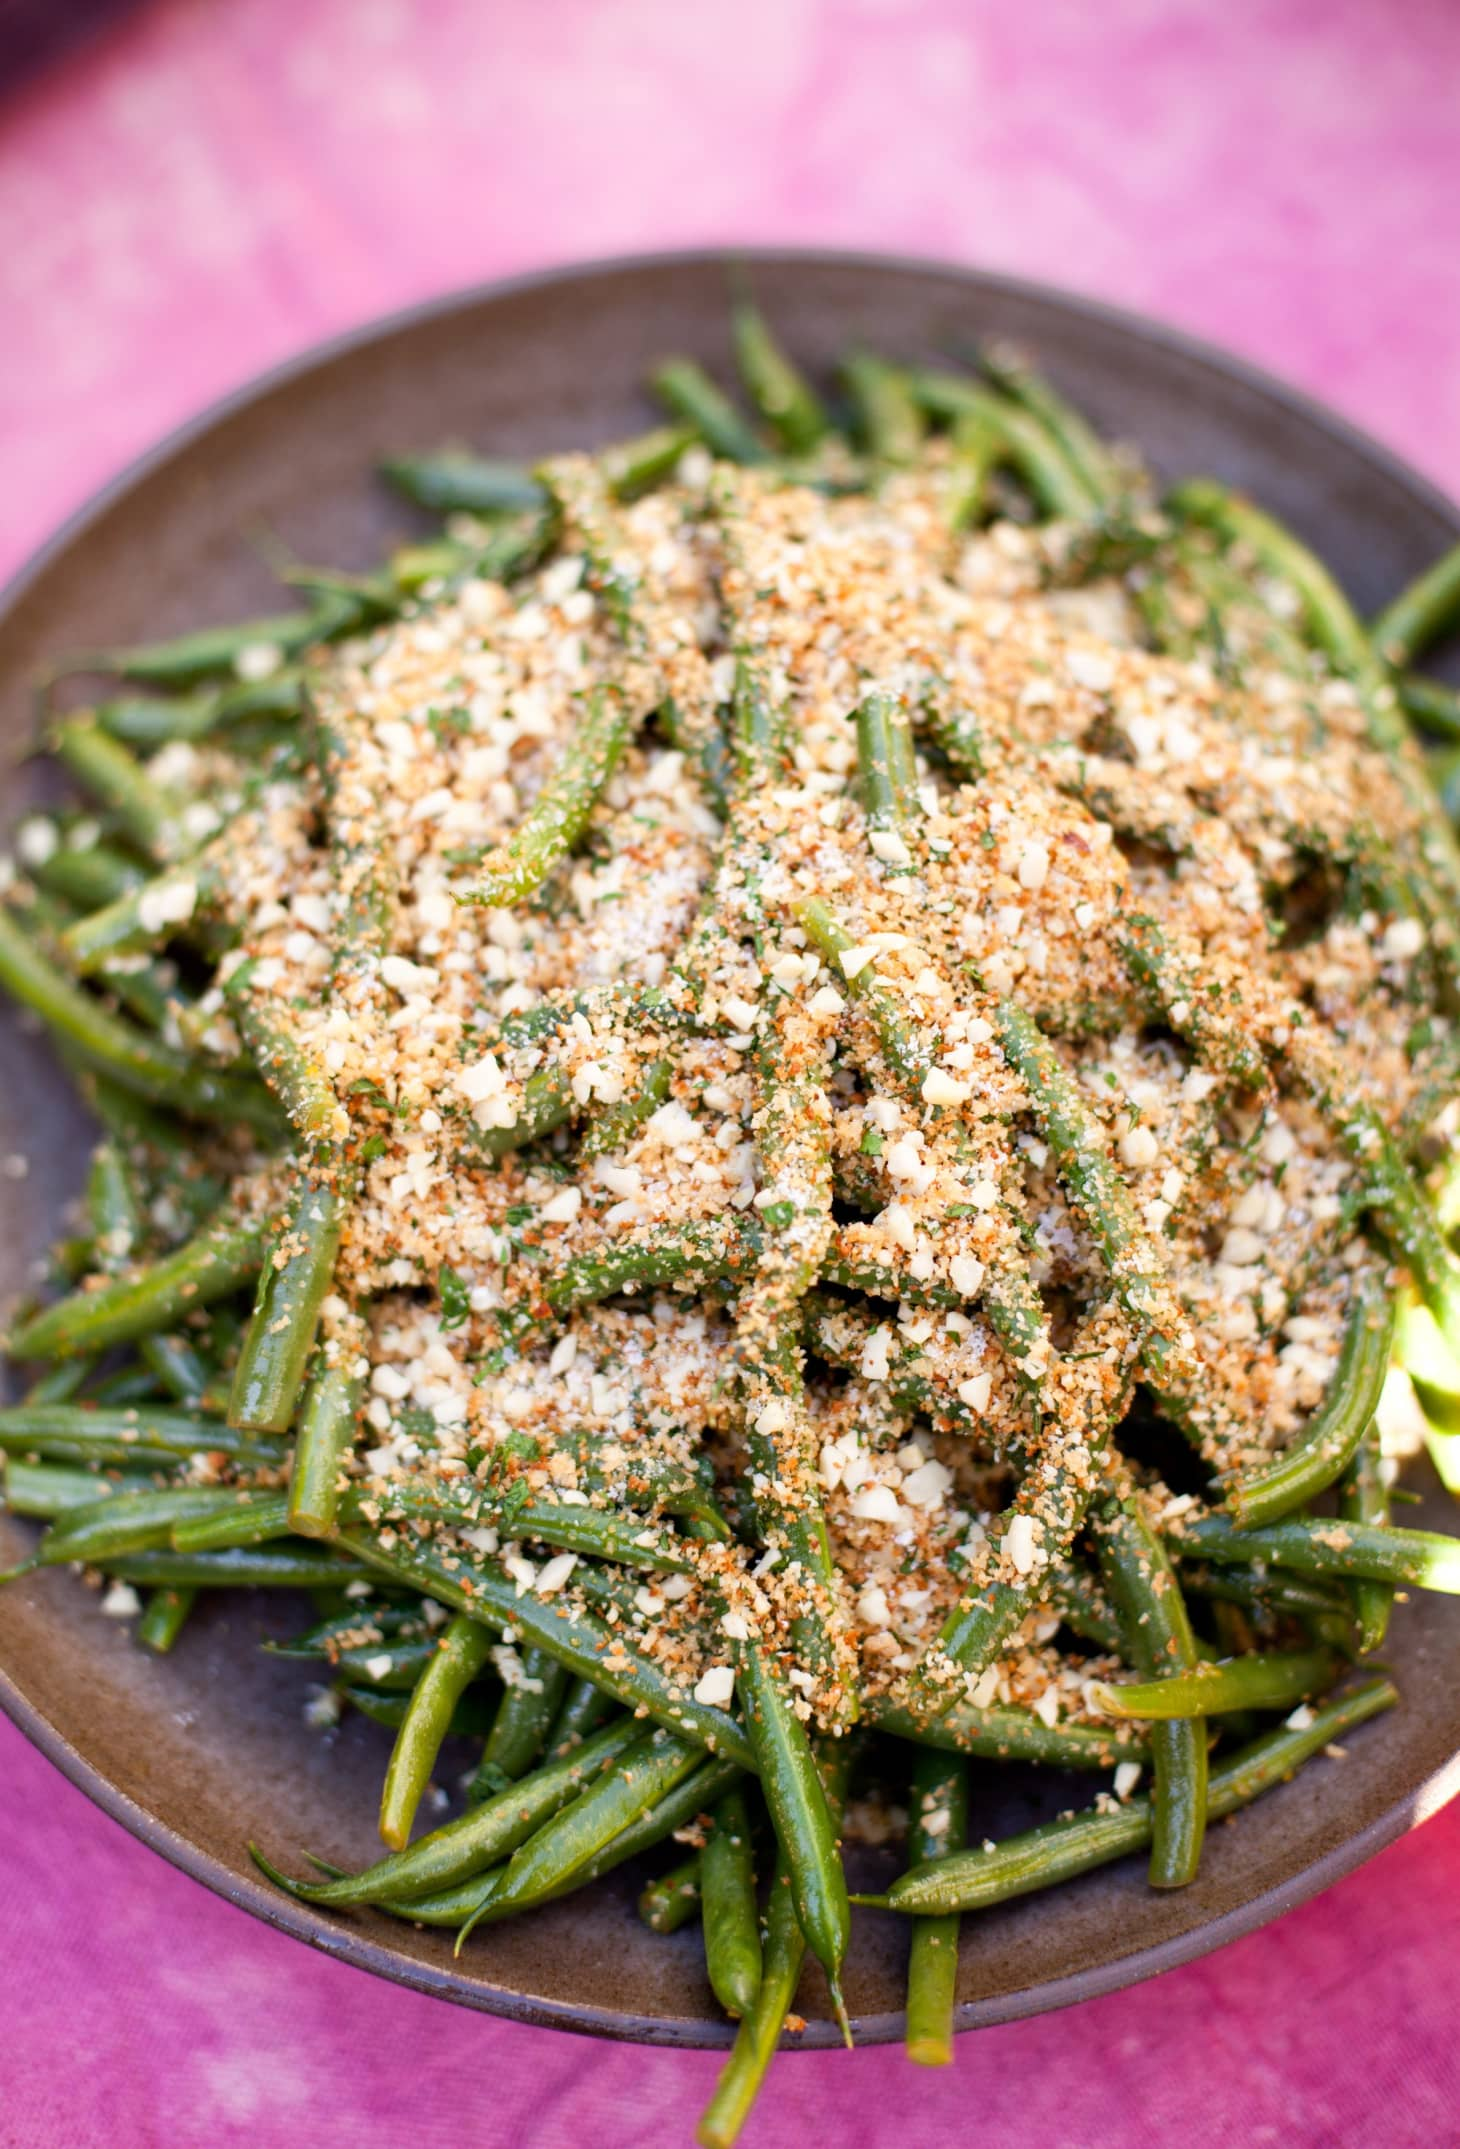 10 Ways to Turn a Bag of Fresh Green Beans into Dinner | Kitchn